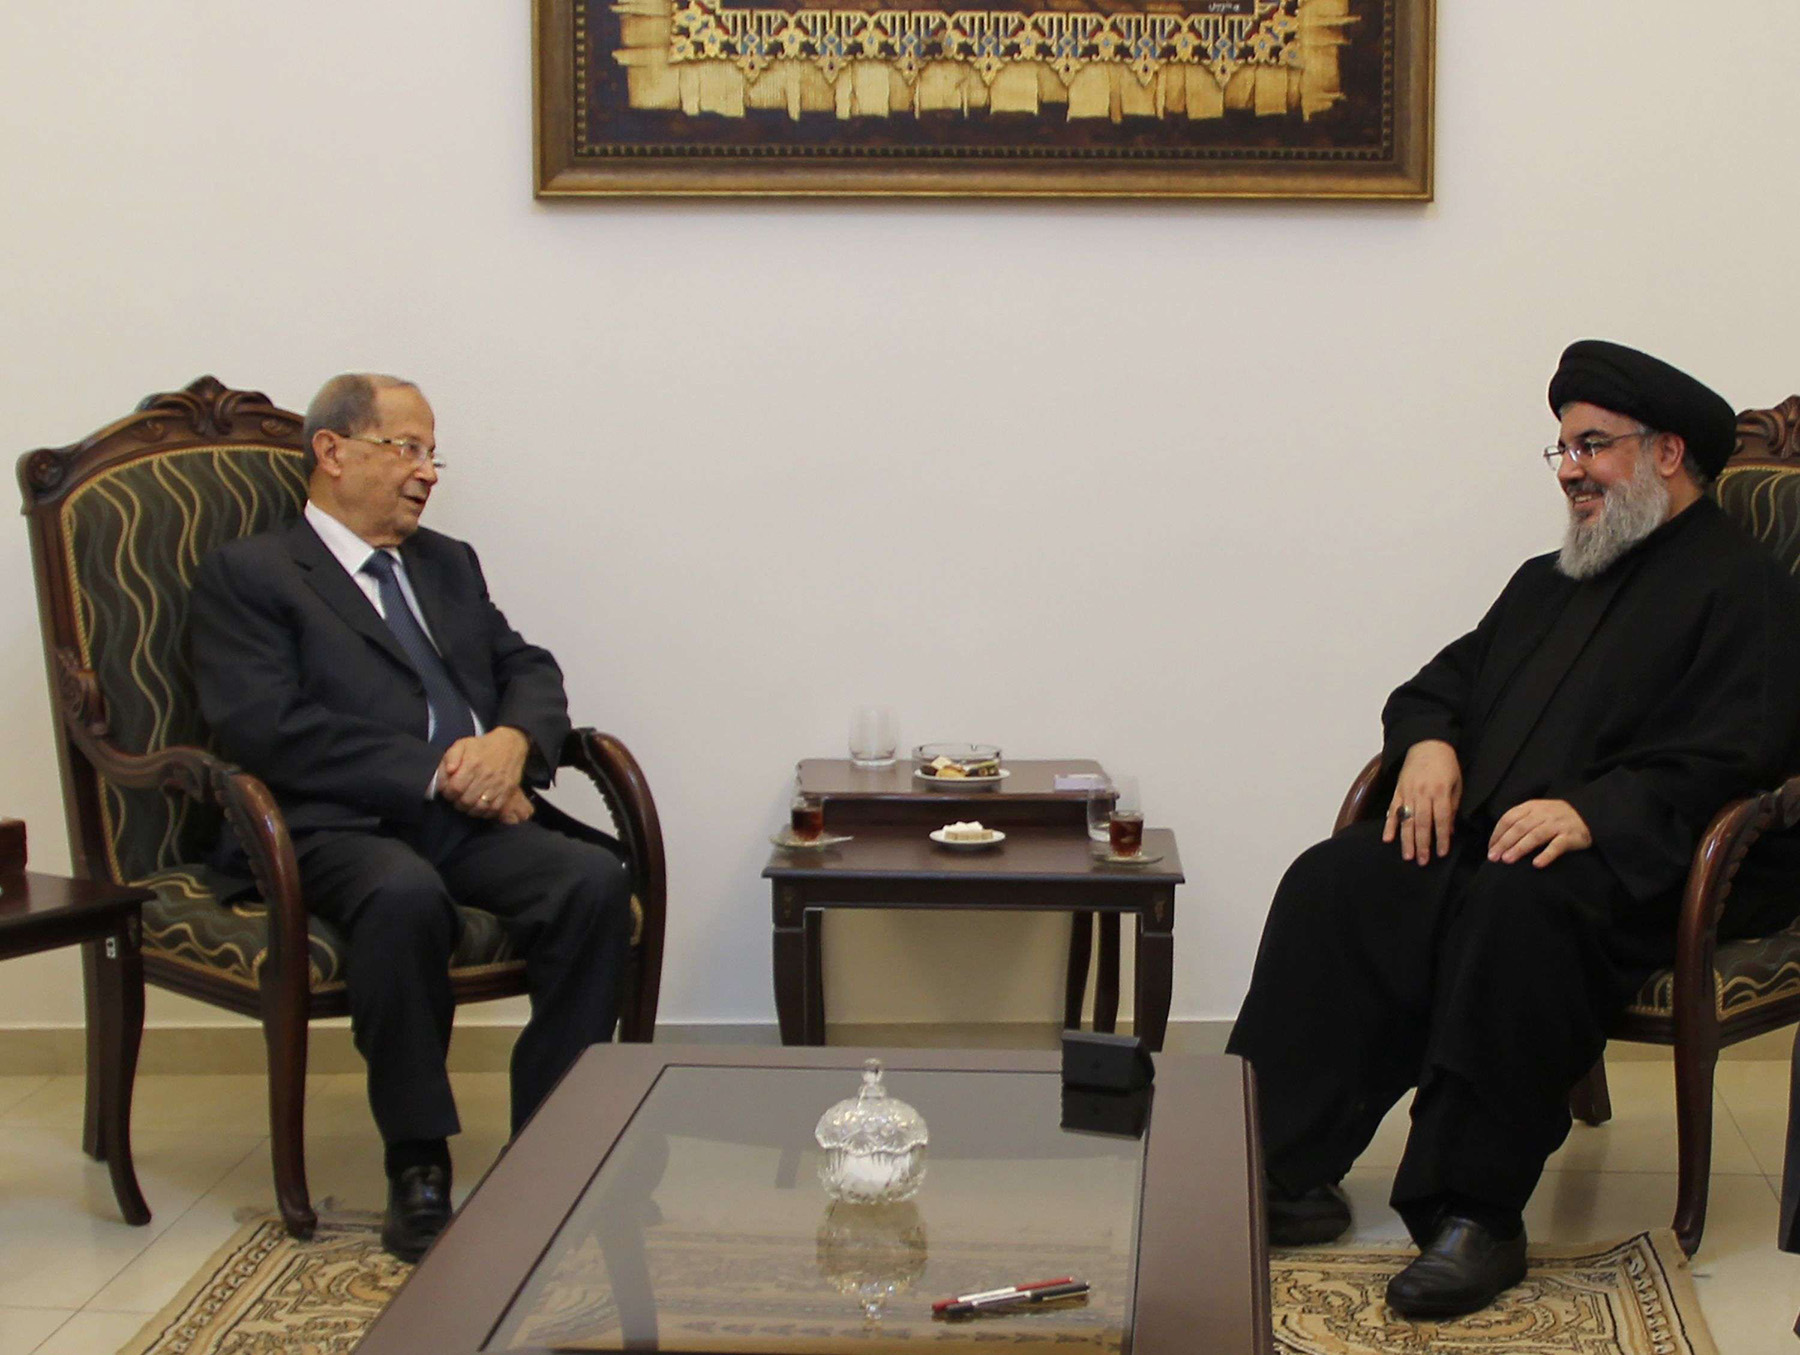 An October 2016 file picture shows Hassan Nasrallah (R), the head of Lebanon's militant Shia movement Hezbollah, meeting with General Michel Aoun at an undisclosed location in Lebanon. (AFP)